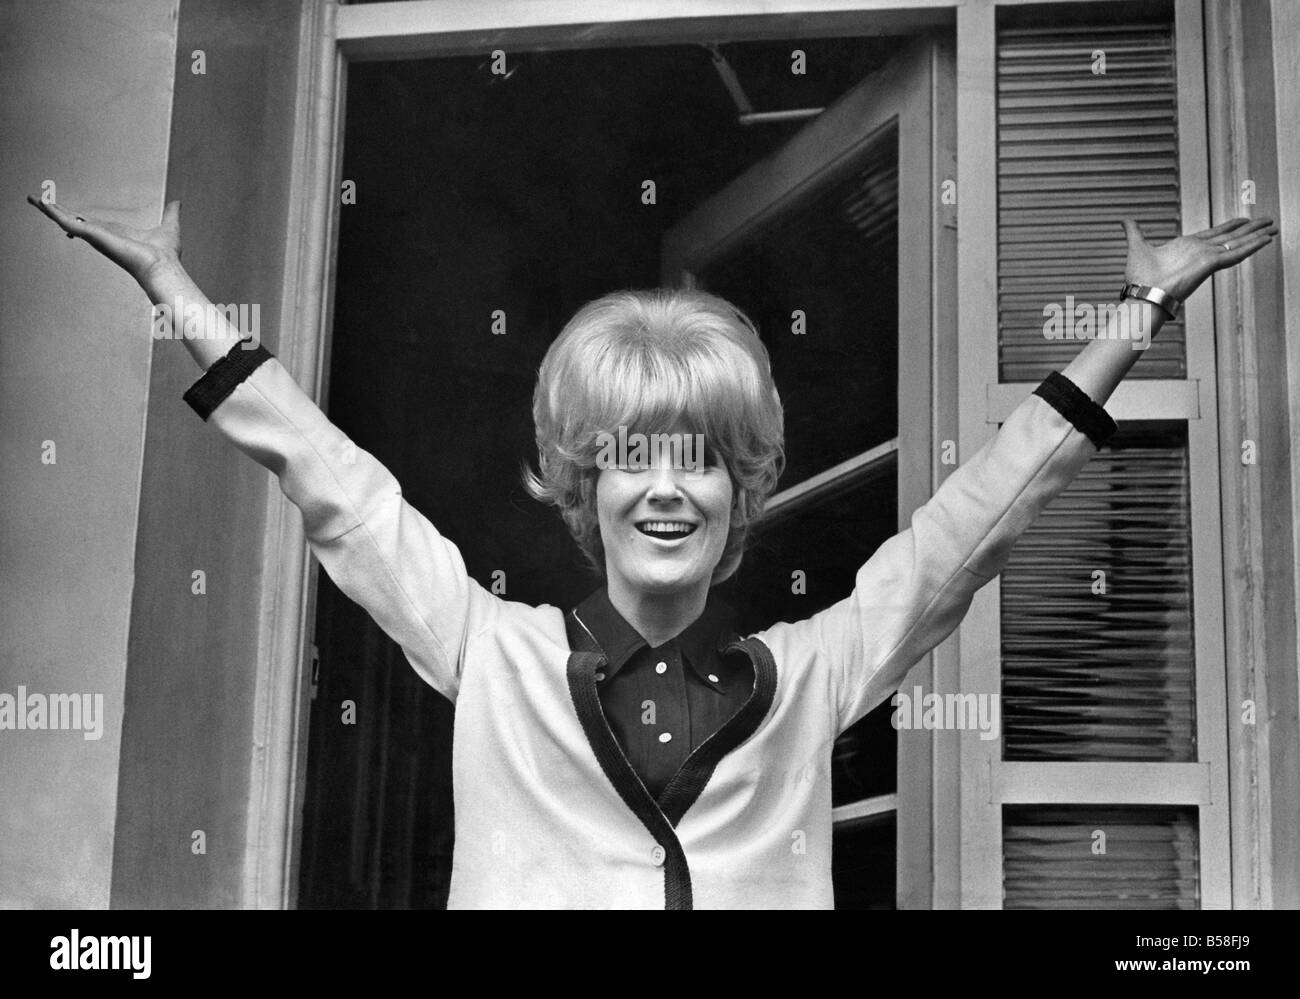 Dusty Springfield gets to the top of the pops with her latest record ðYou don't have to say I love youË - Stock Image